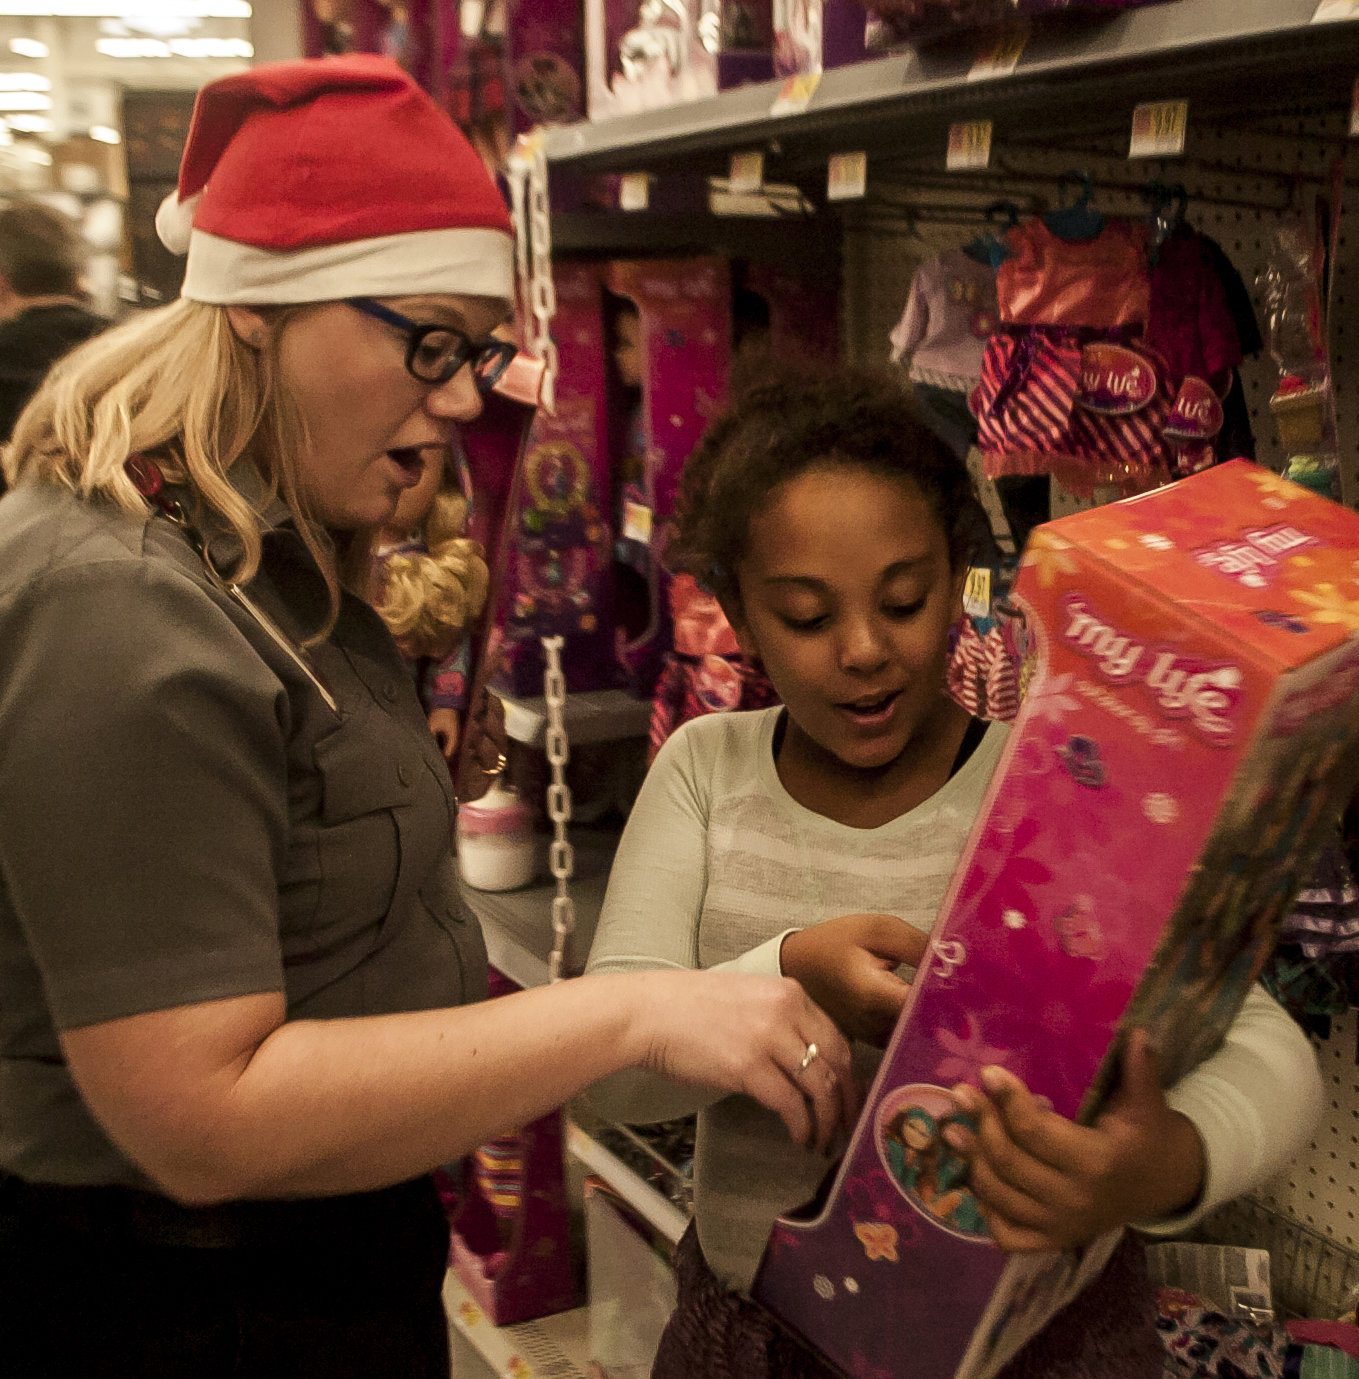 MetroAtlanta's Amber Barber, left, helps Avana Jewell pick out a Christmas present Saturday at Walmart during the Shop with a Hero event.